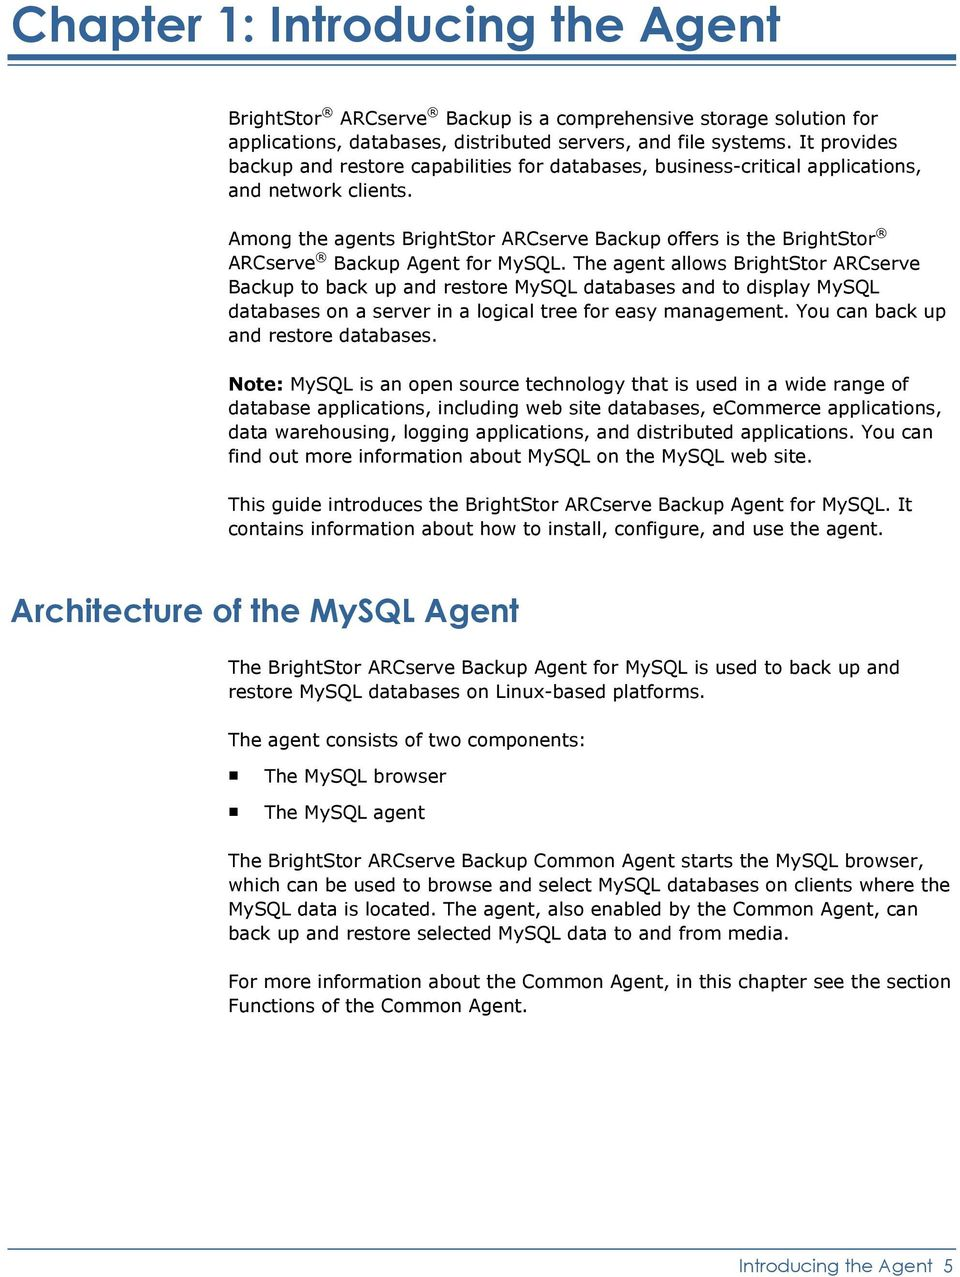 Among the agents BrightStor ARCserve Backup offers is the BrightStor ARCserve Backup Agent for MySQL.